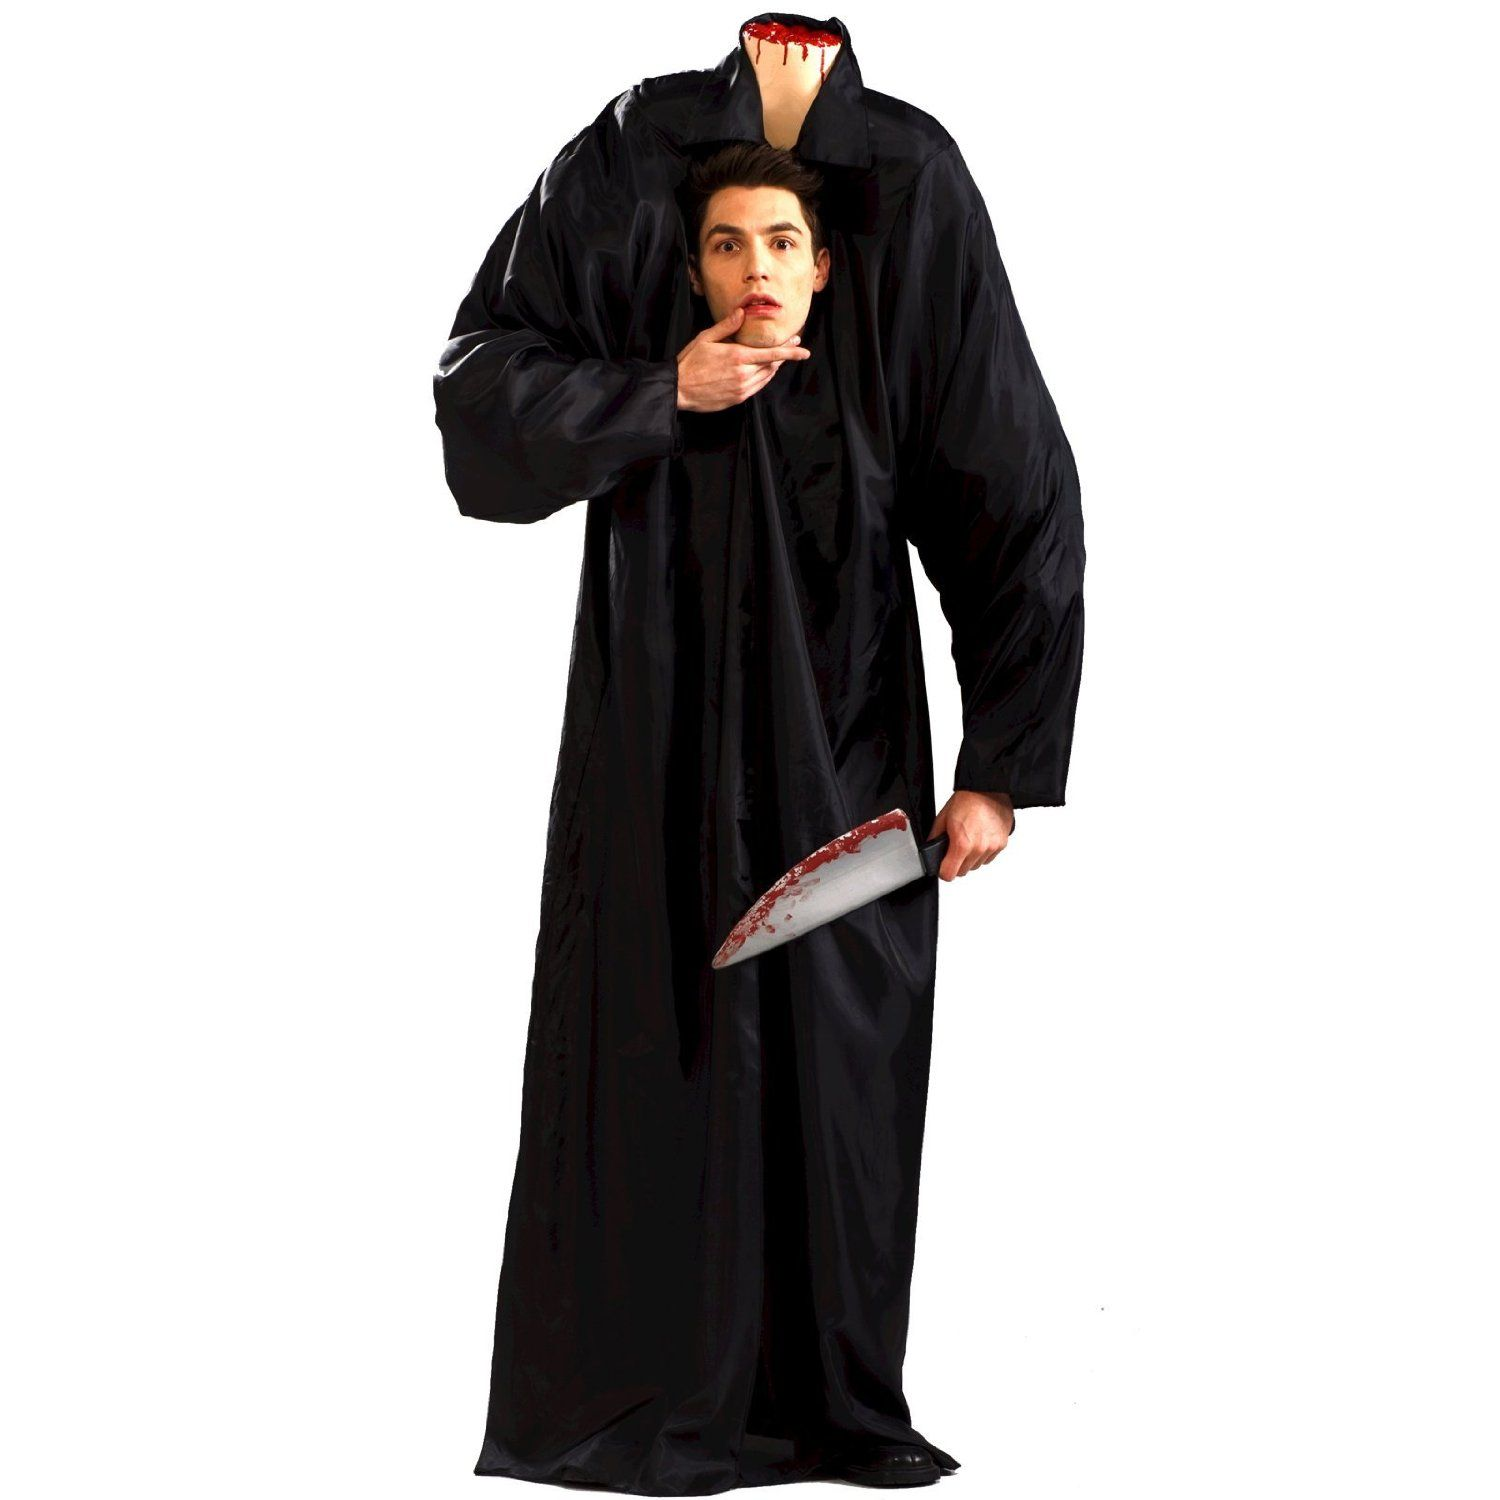 amazoncom headless man adult halloween costume size standard clothing - Amazon Halloween Costumes Men